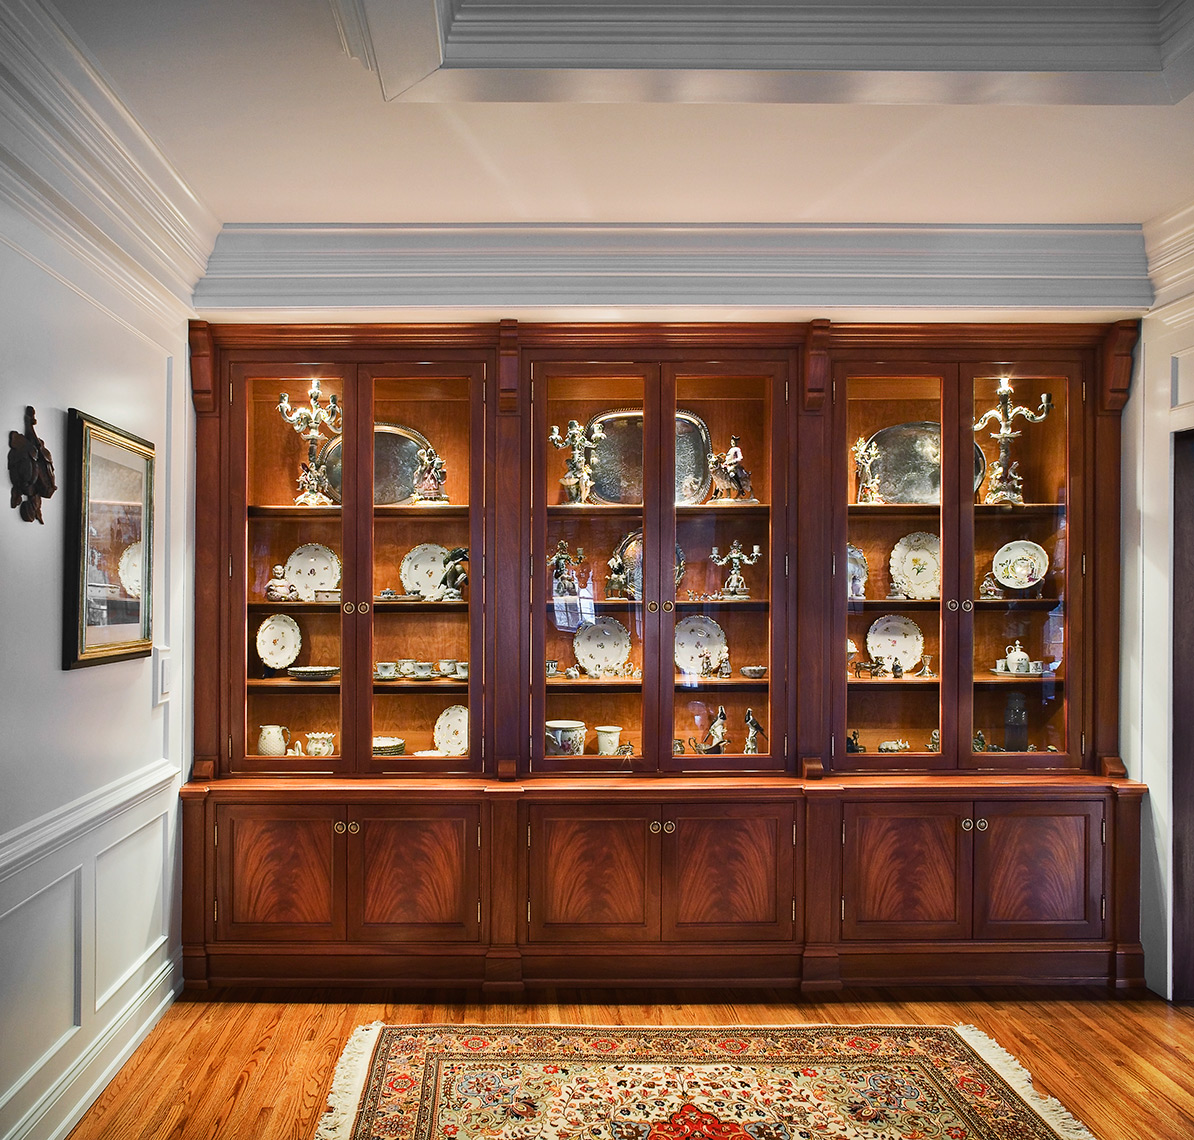 custom kitchen cabinets Hunterdon County, NJ-Traditional Mahogany Dinning Room Cabinet